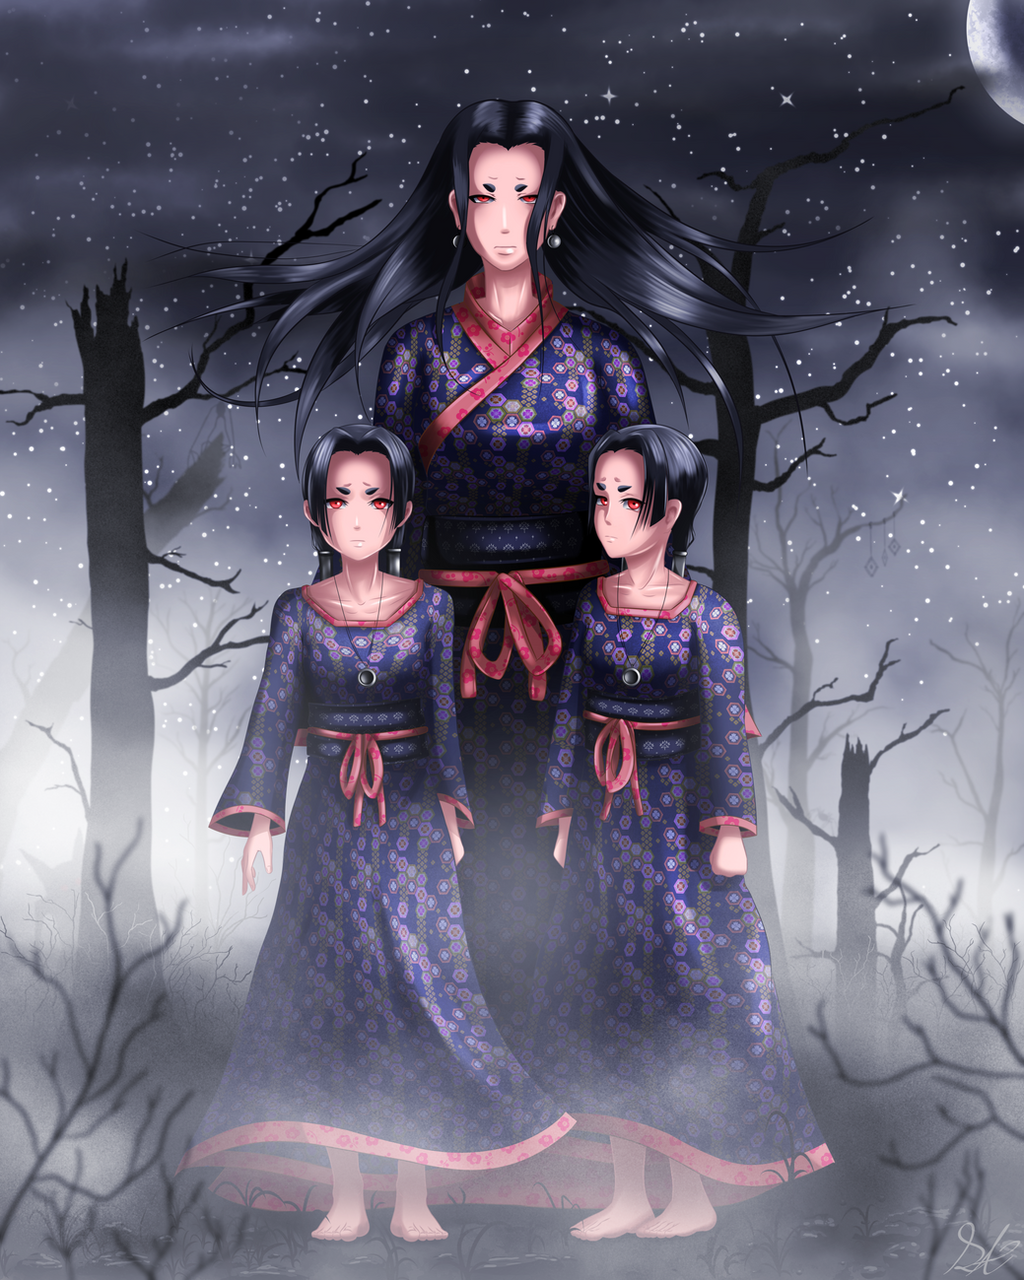 daughters_of_nightmare_by_rocky_ace-d86a